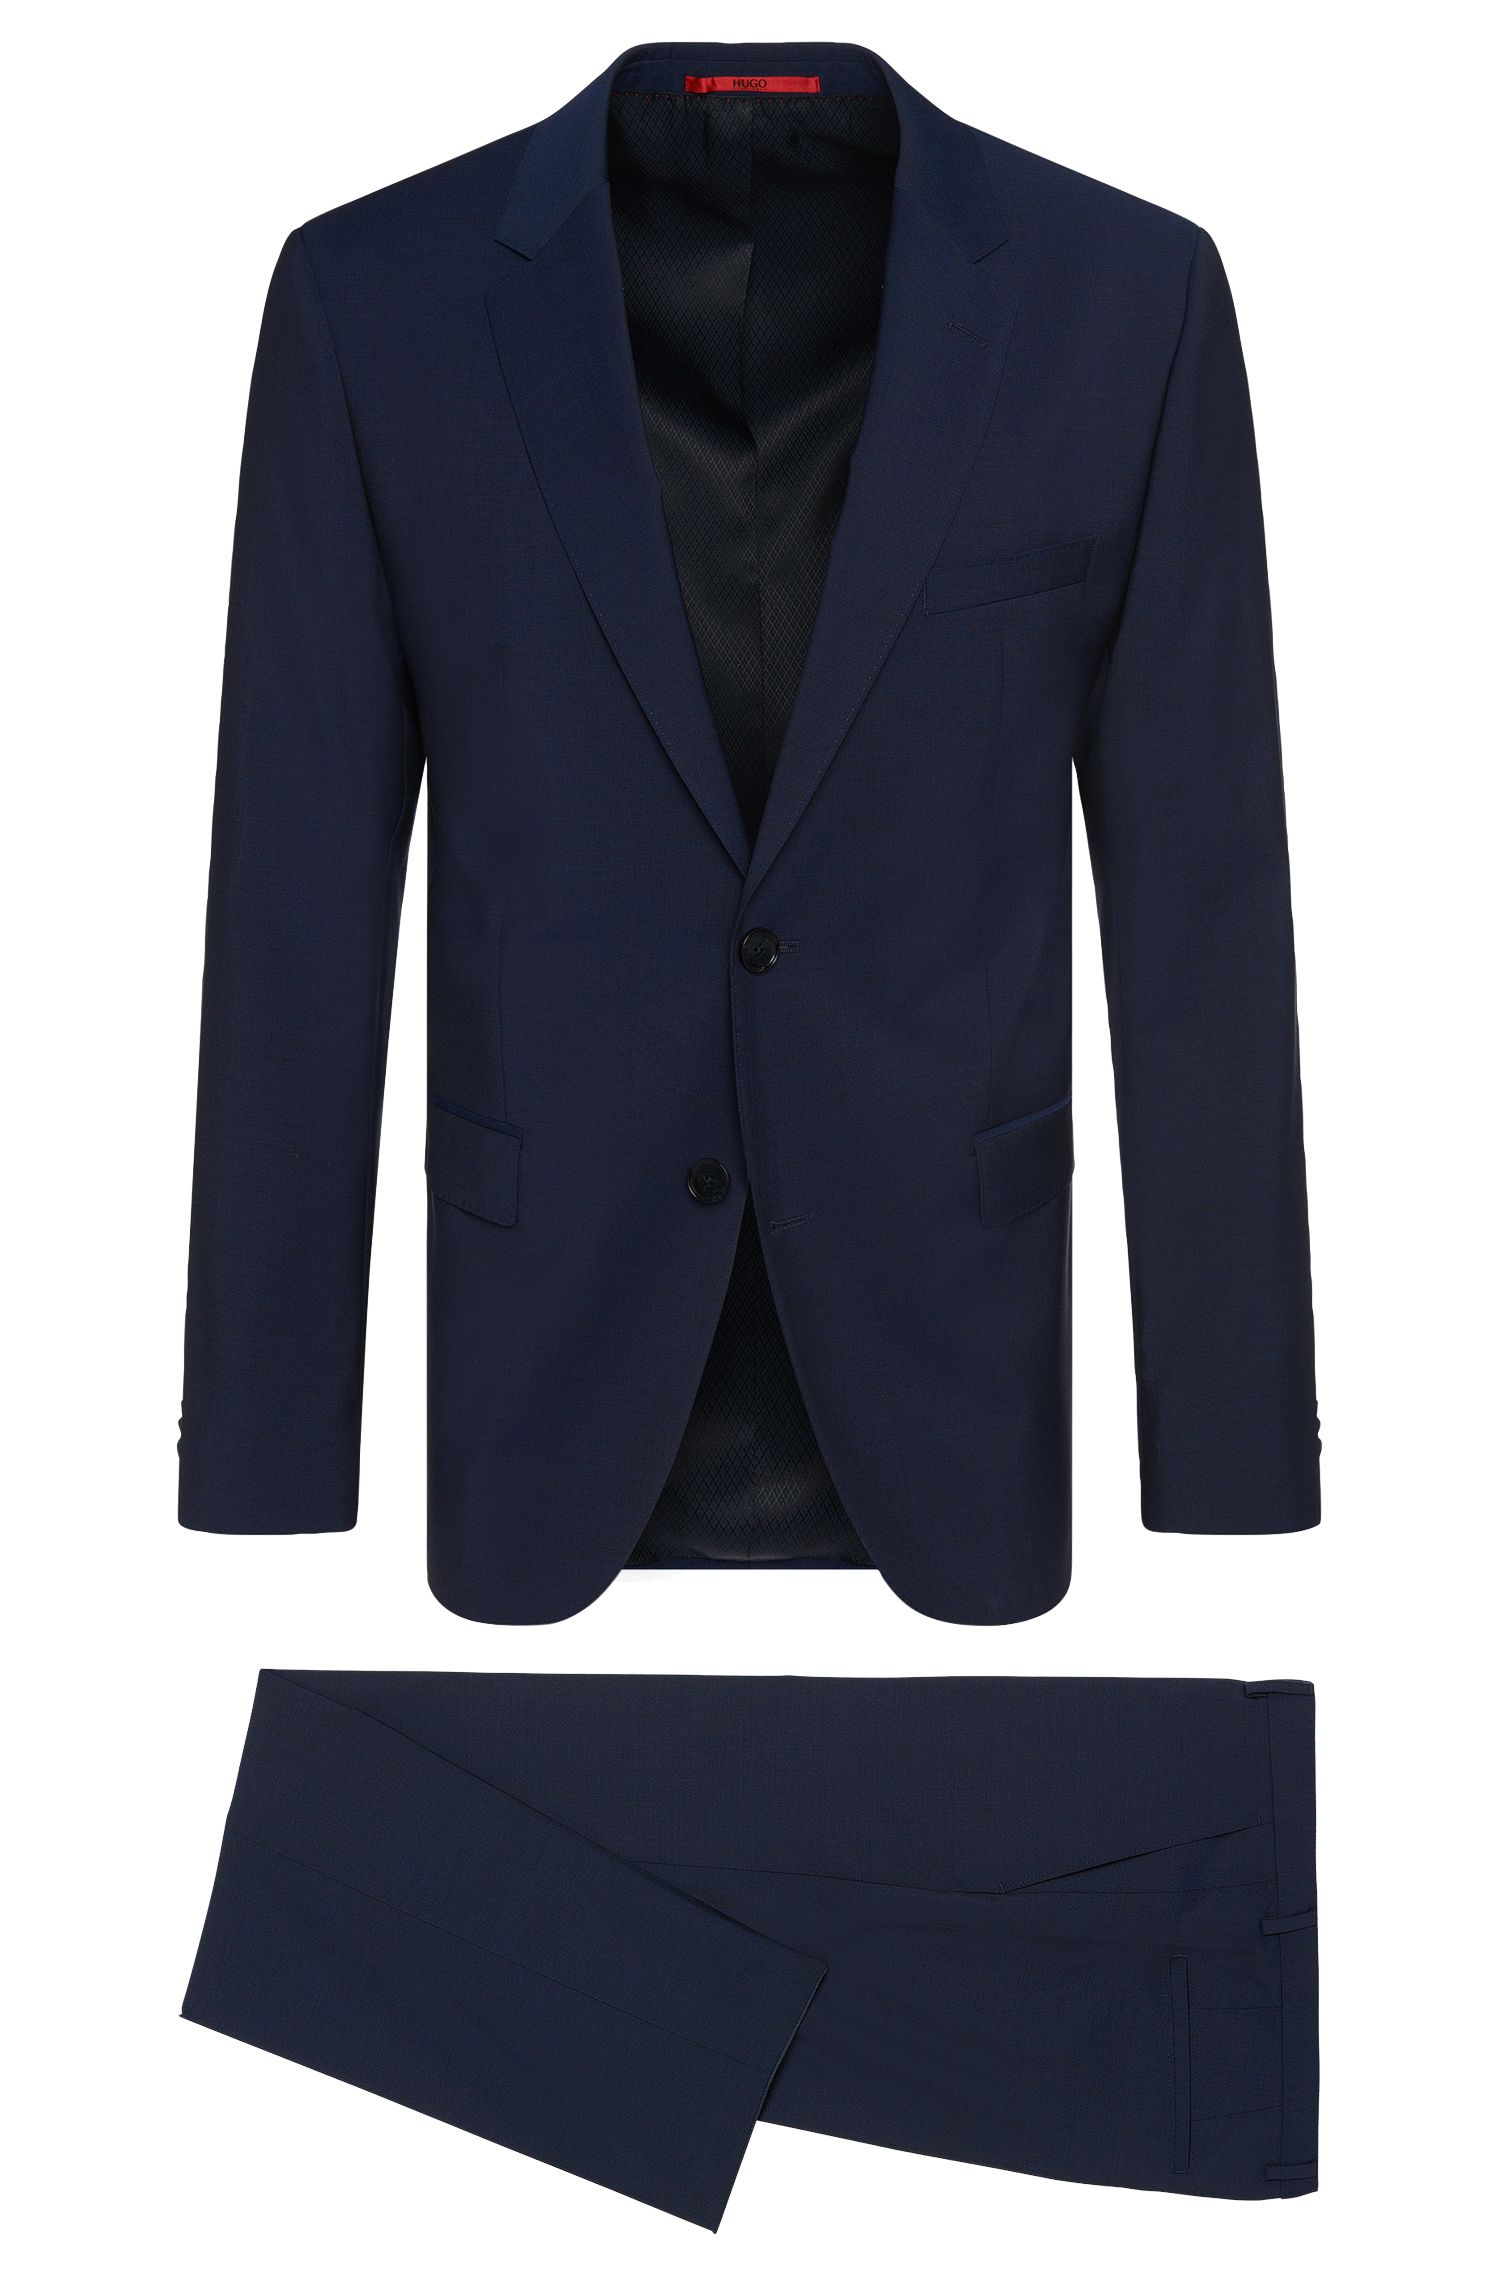 Virgin Wool Suit, Slim Fit | C-Jeffrey/C-Simmons, Blue